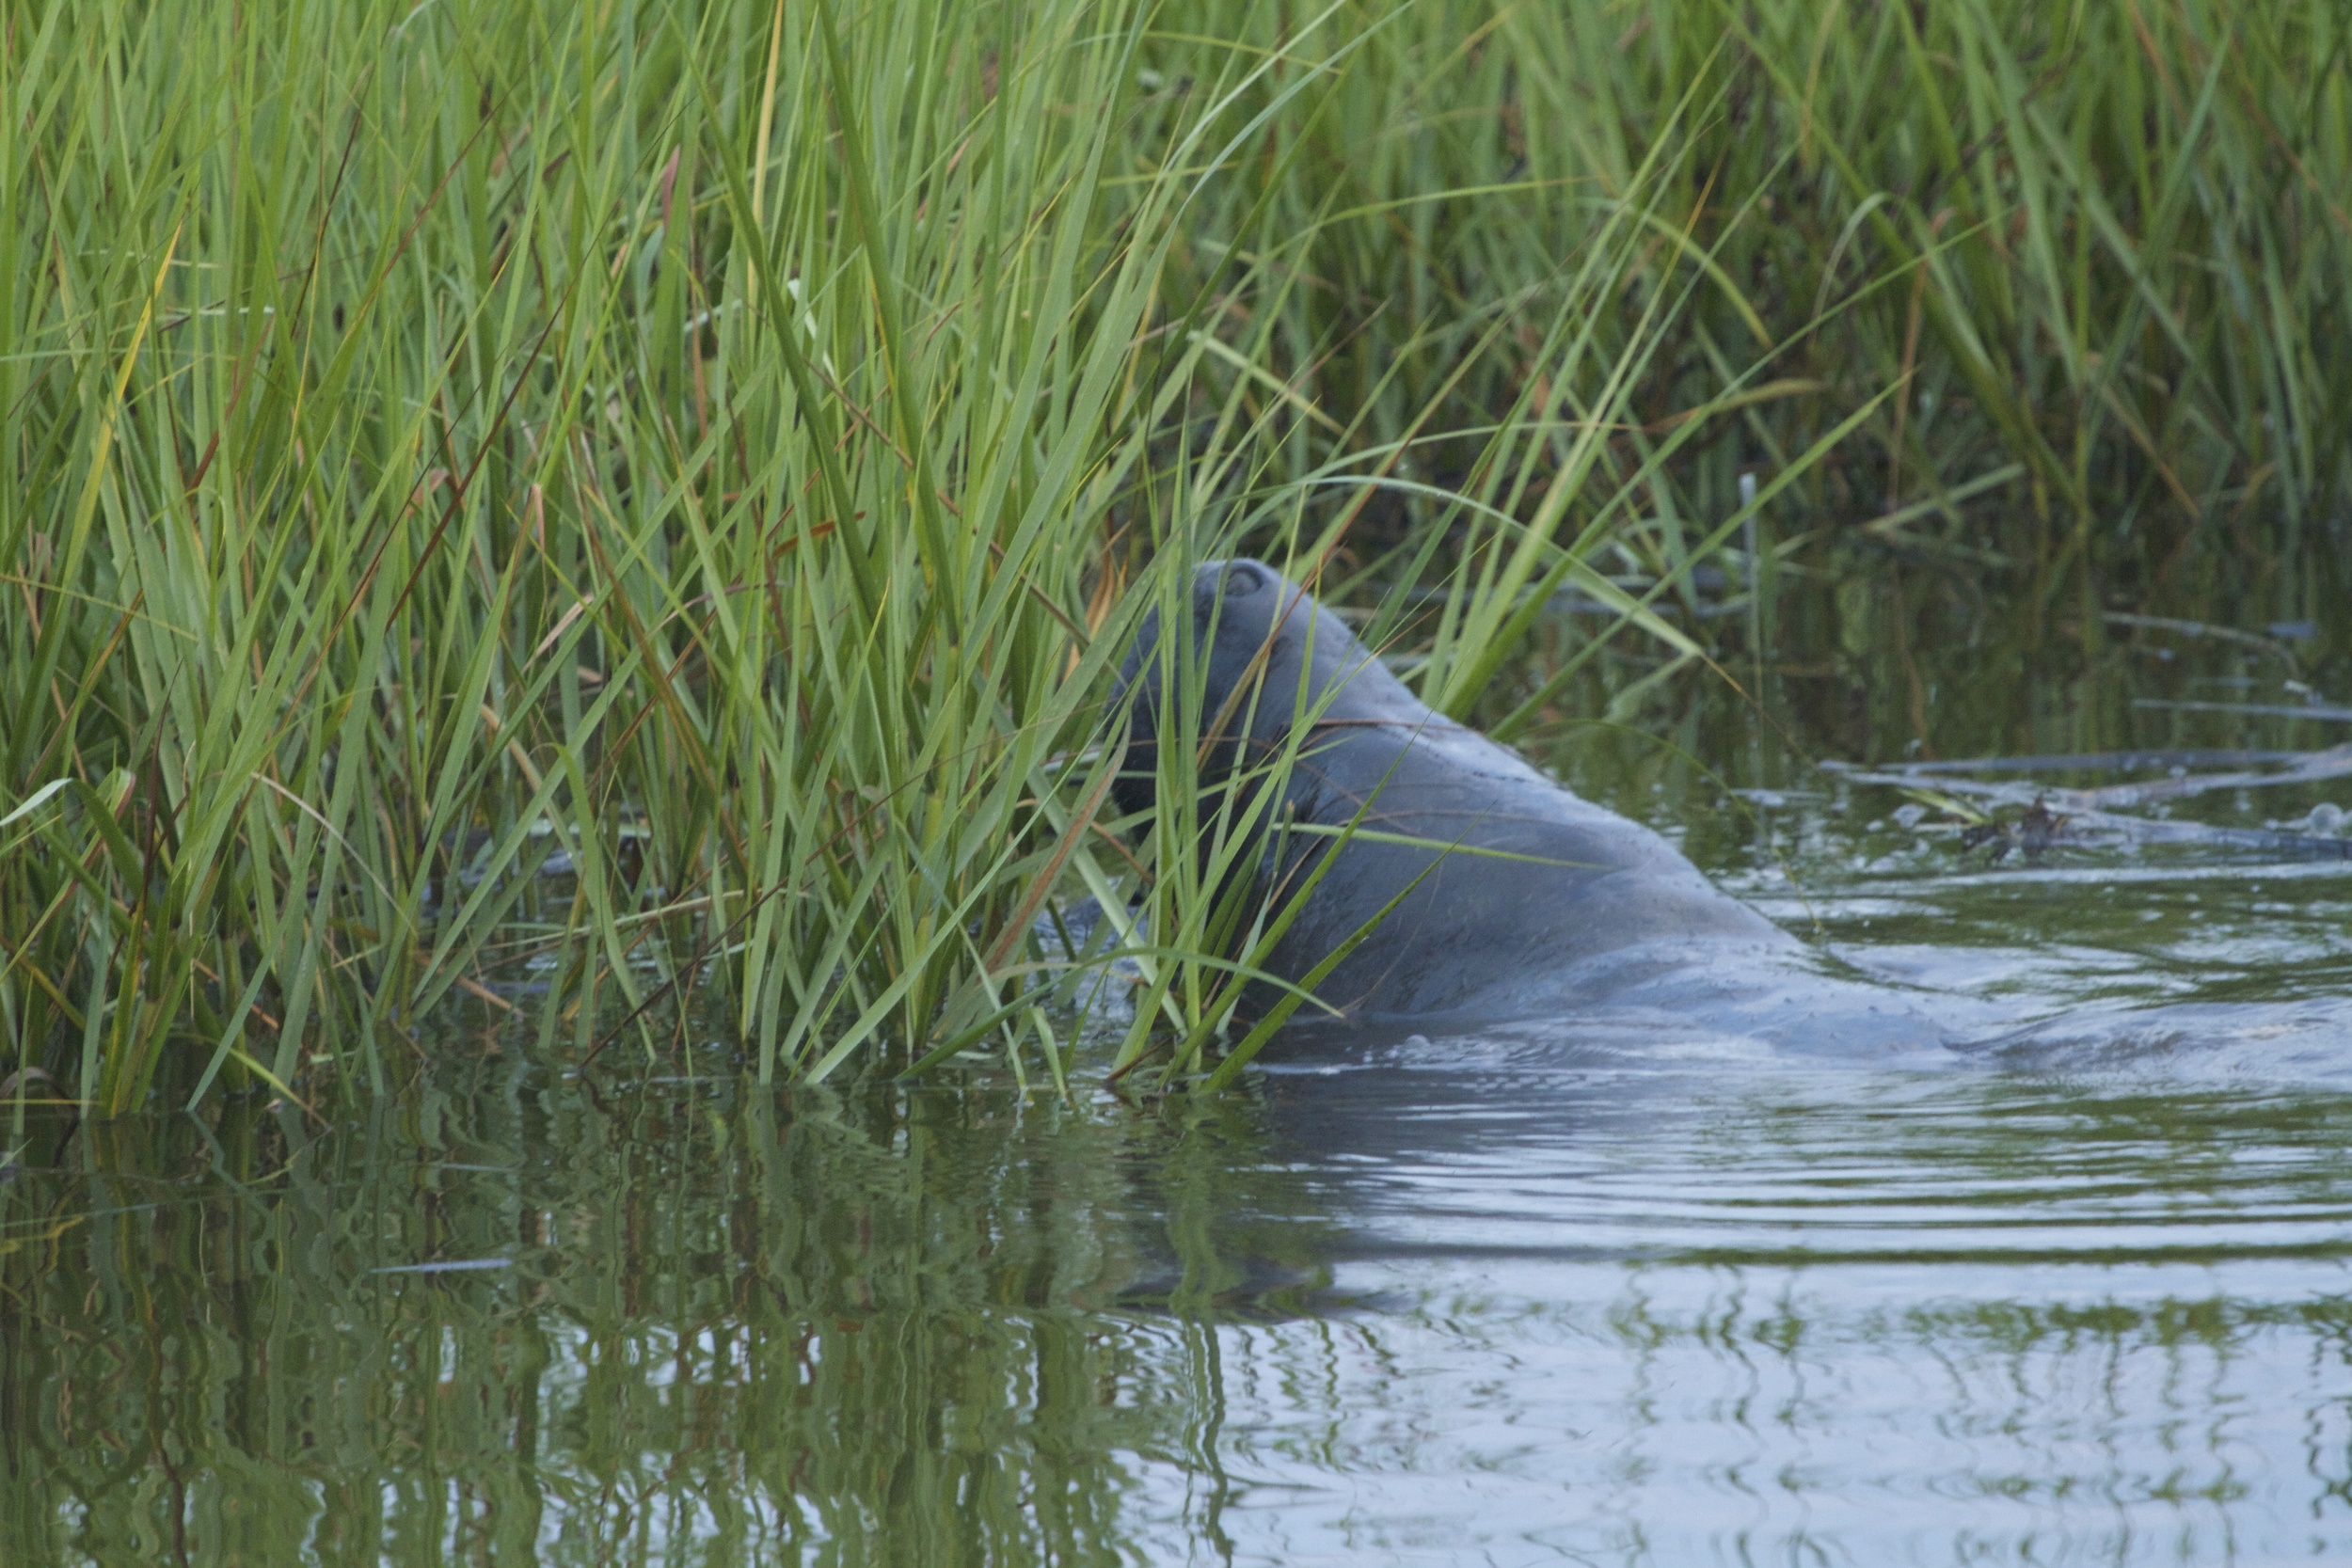 An enormous manatee munches on the marsh grass.